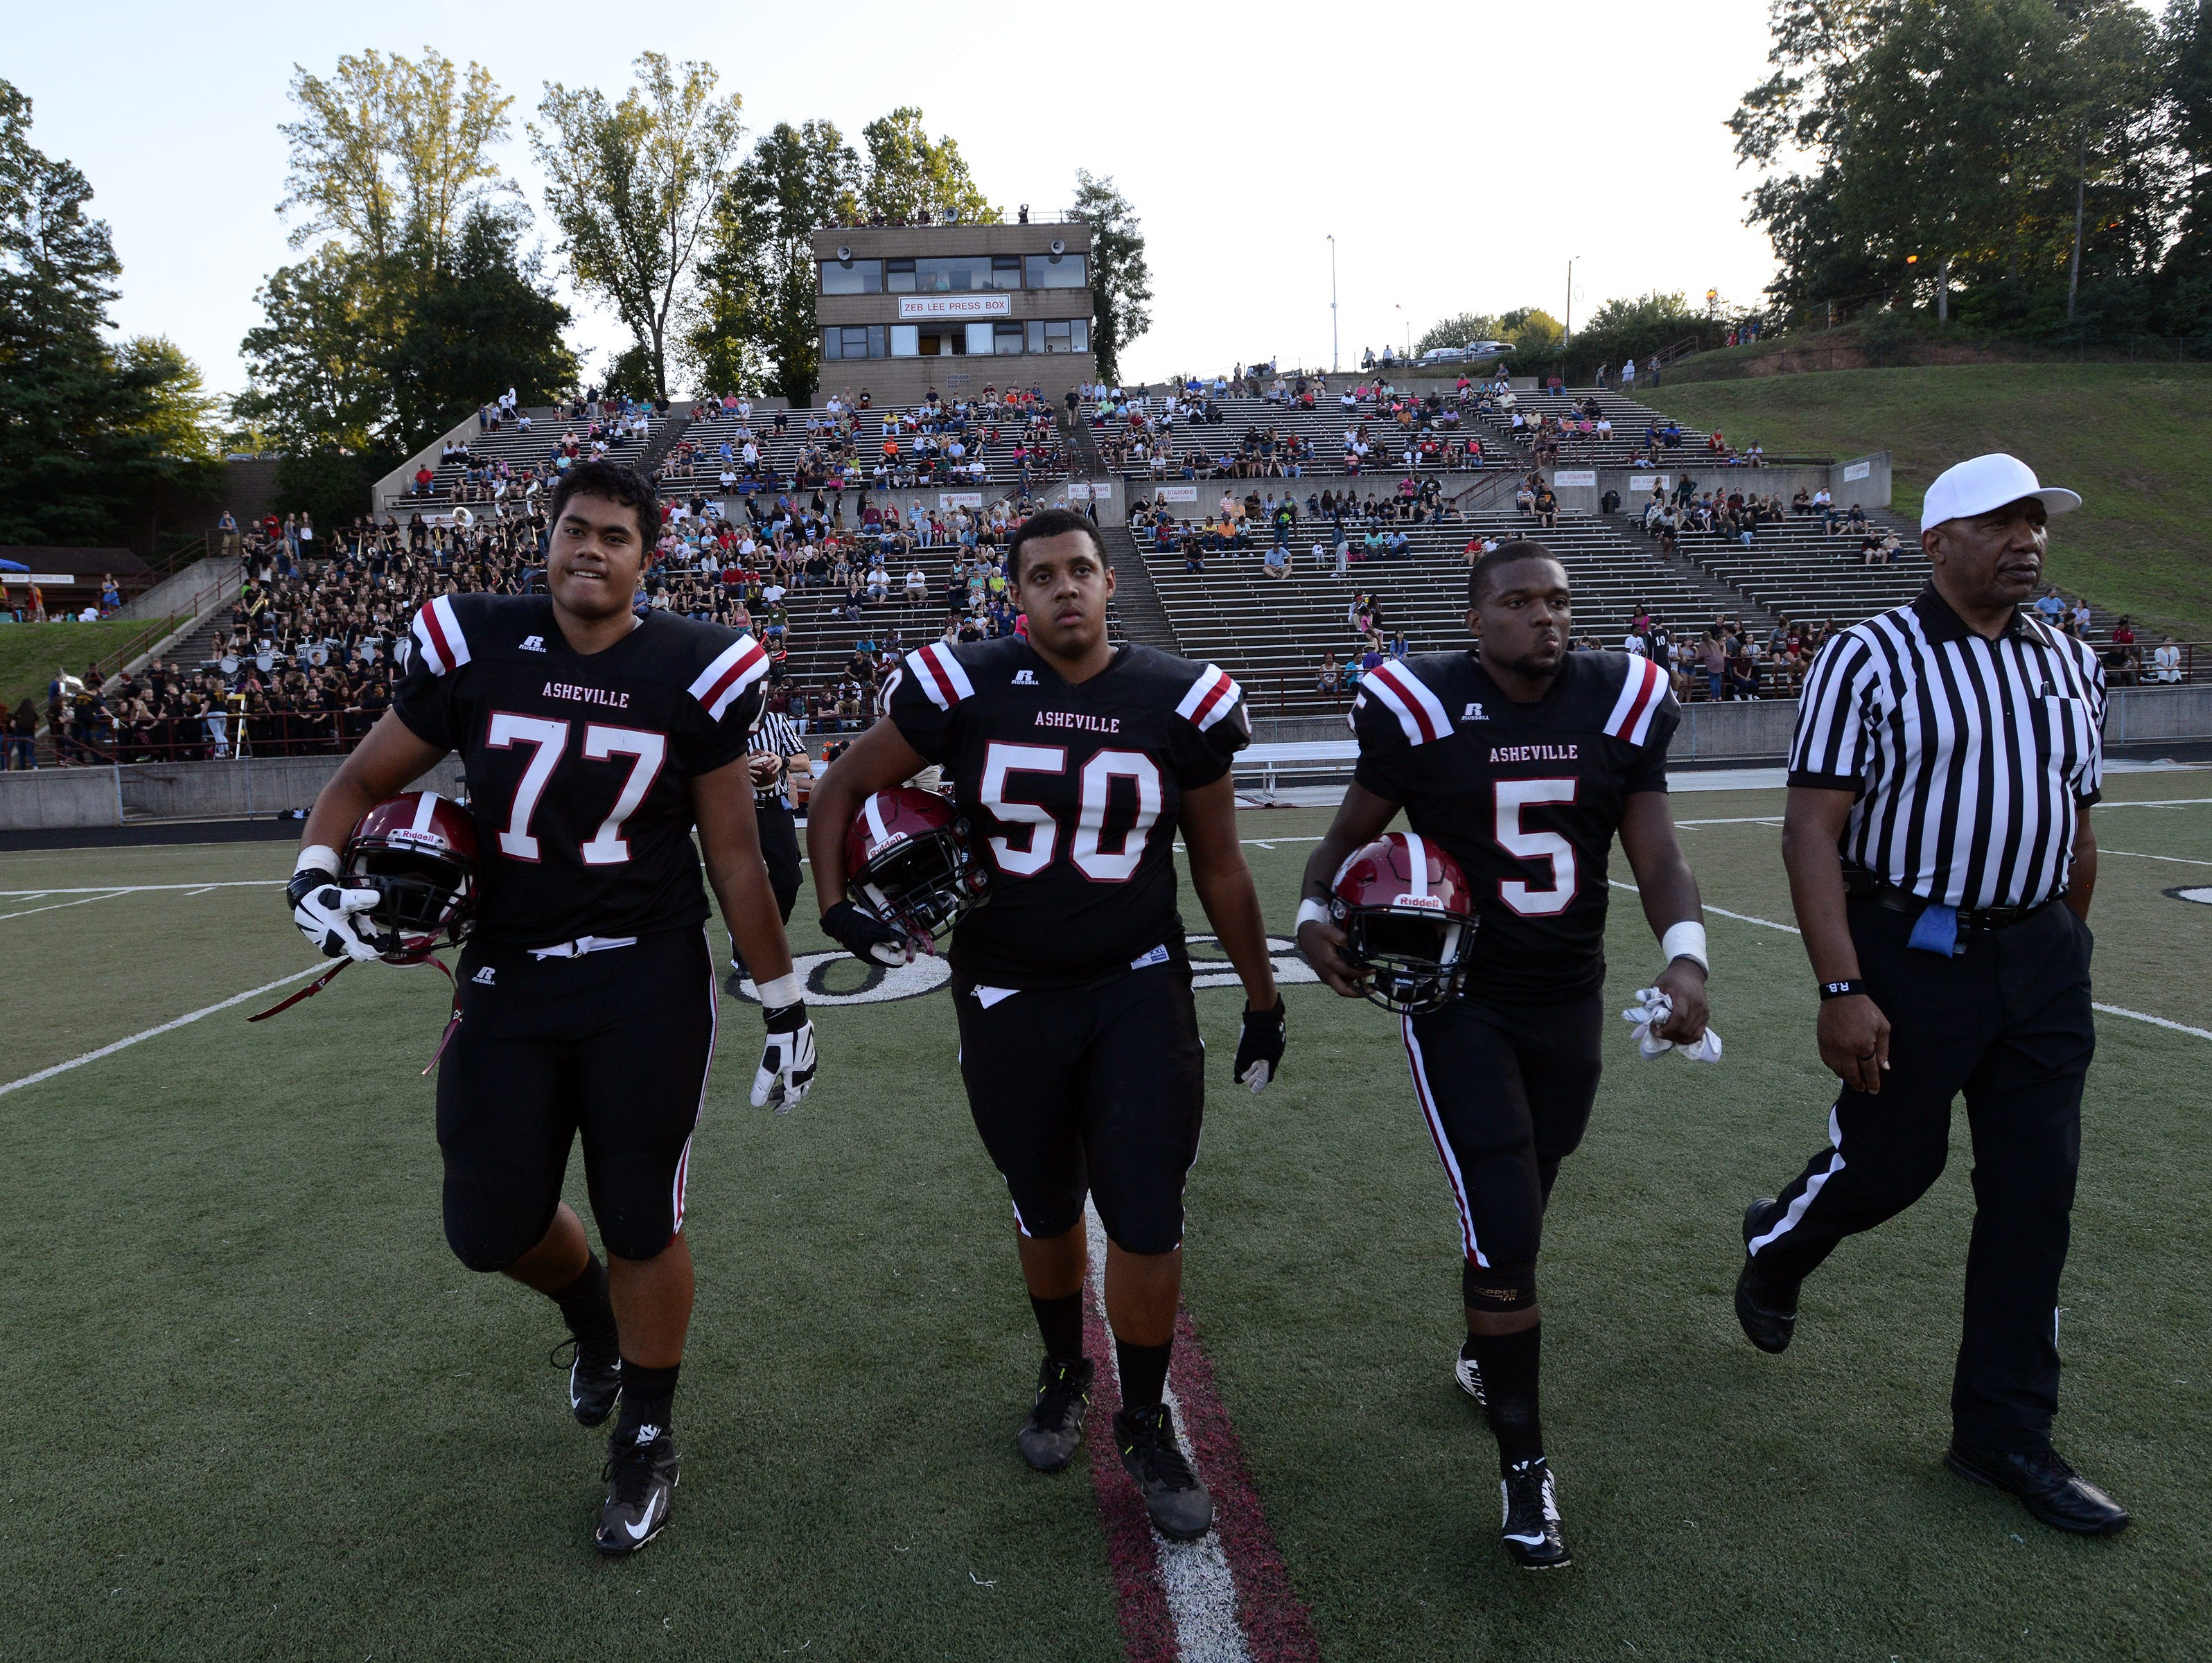 Asheville High football players, from left to right, Pete Leota, Cade Pearson and Reggie Battle